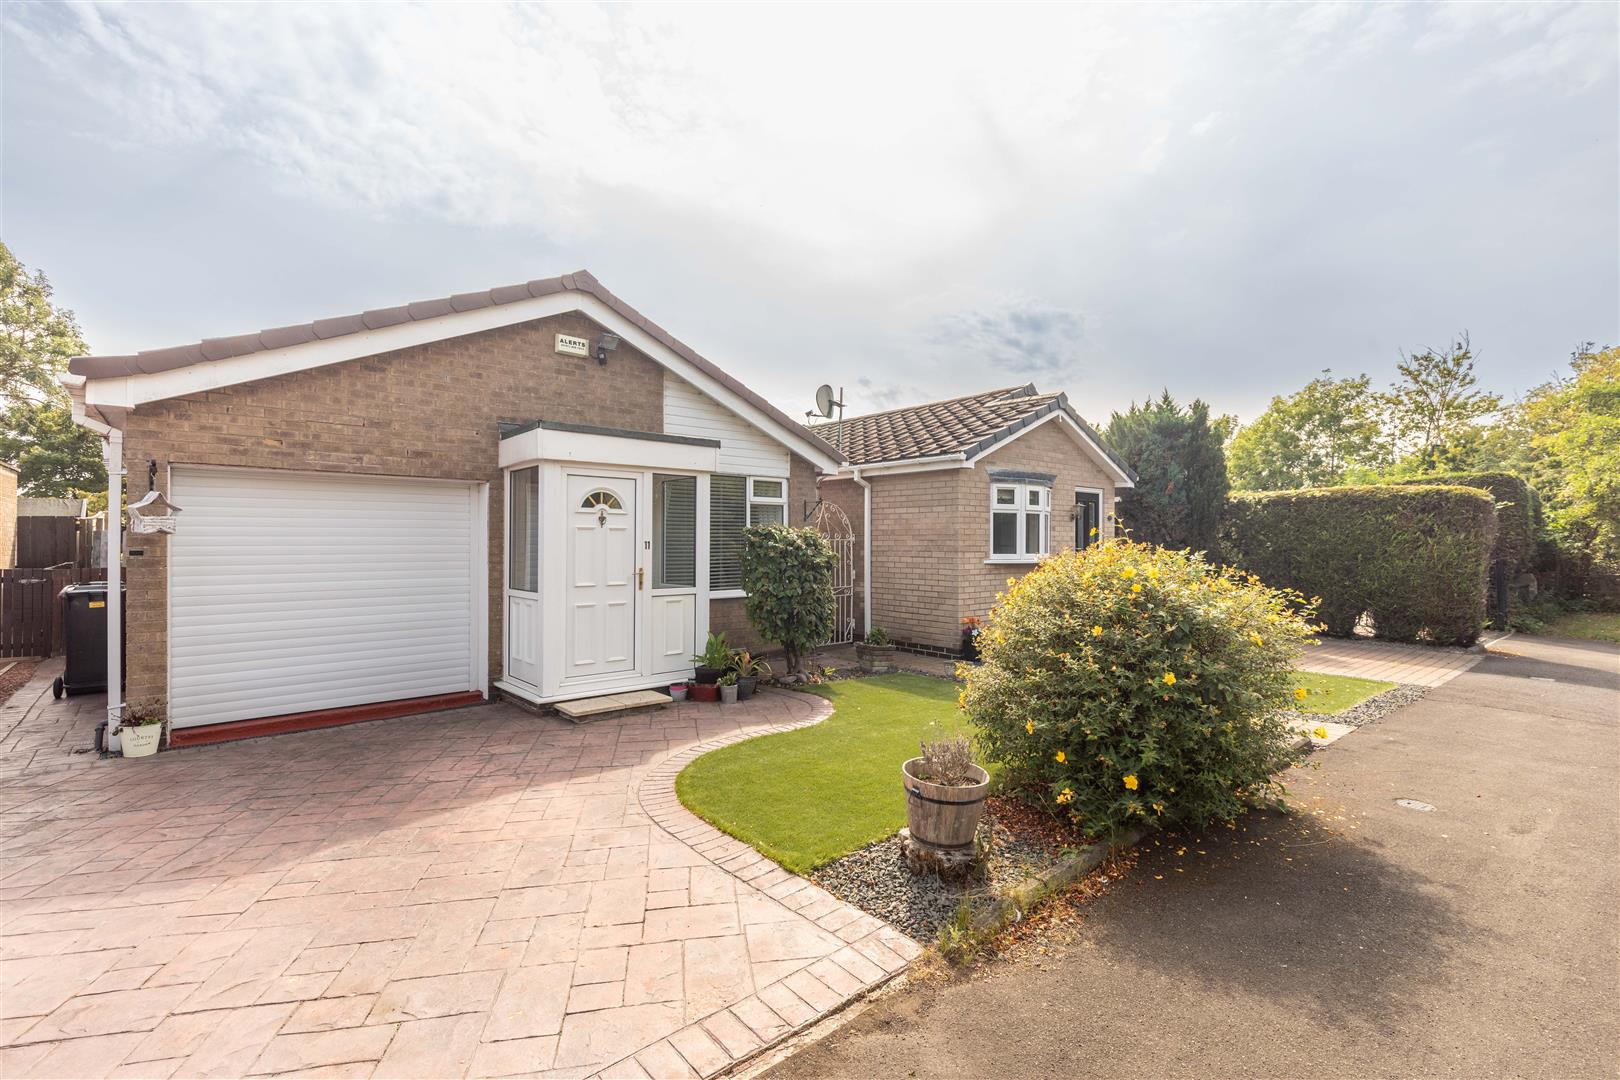 2 bed detached bungalow for sale in Wideopen, NE13 7HX - Property Image 1